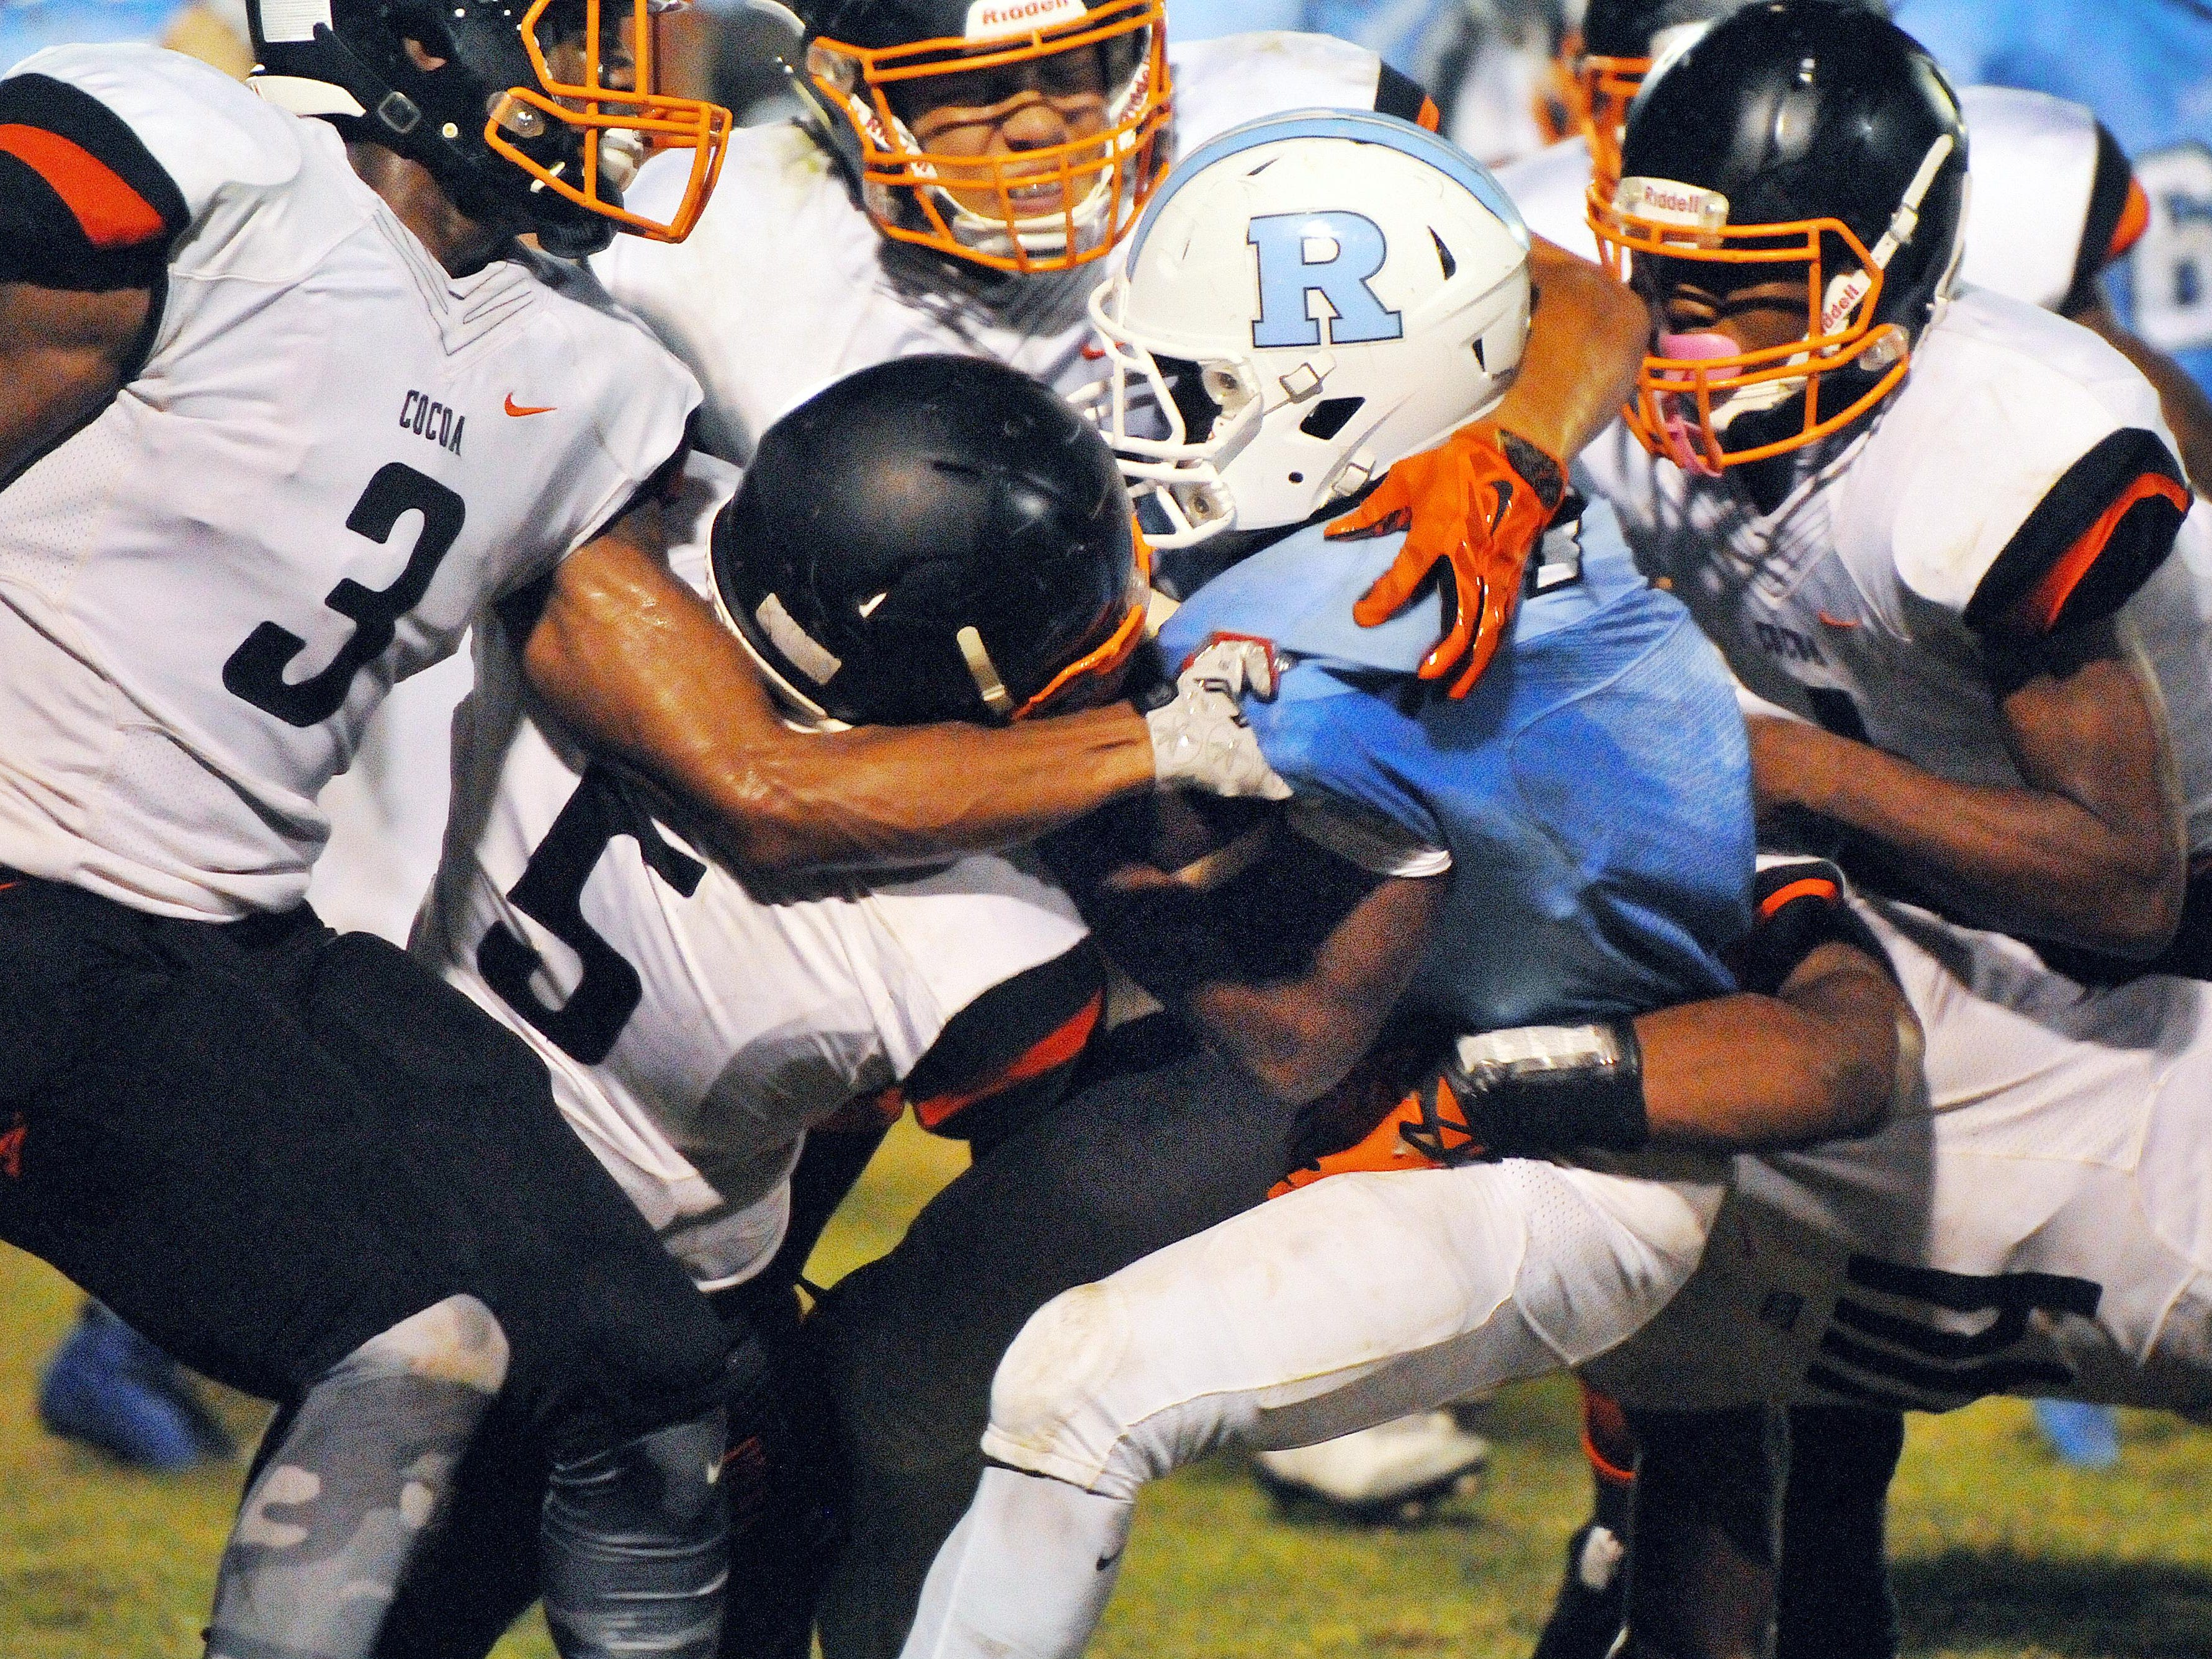 Cocoa High defenders swarm to the ball carried by Rockledge High's Jalen Mitchell (7) during Friday night's BBQ Bowl game held at McLarty Stadium.